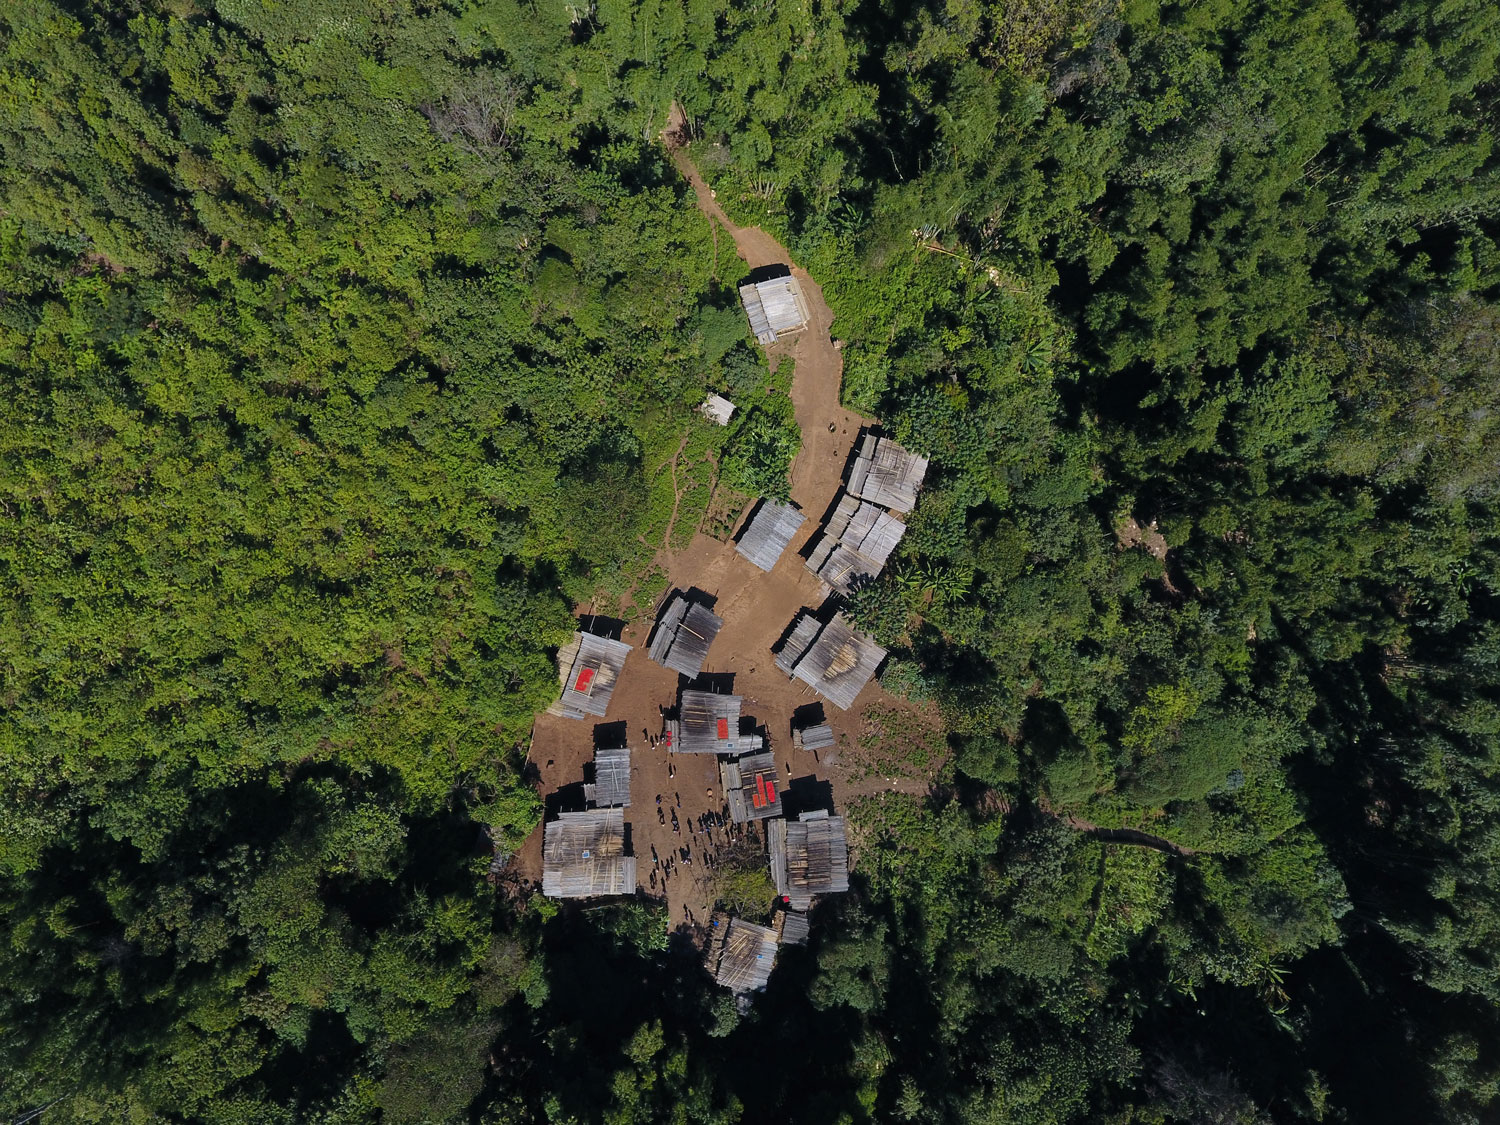 aerial photo of a community in a forest